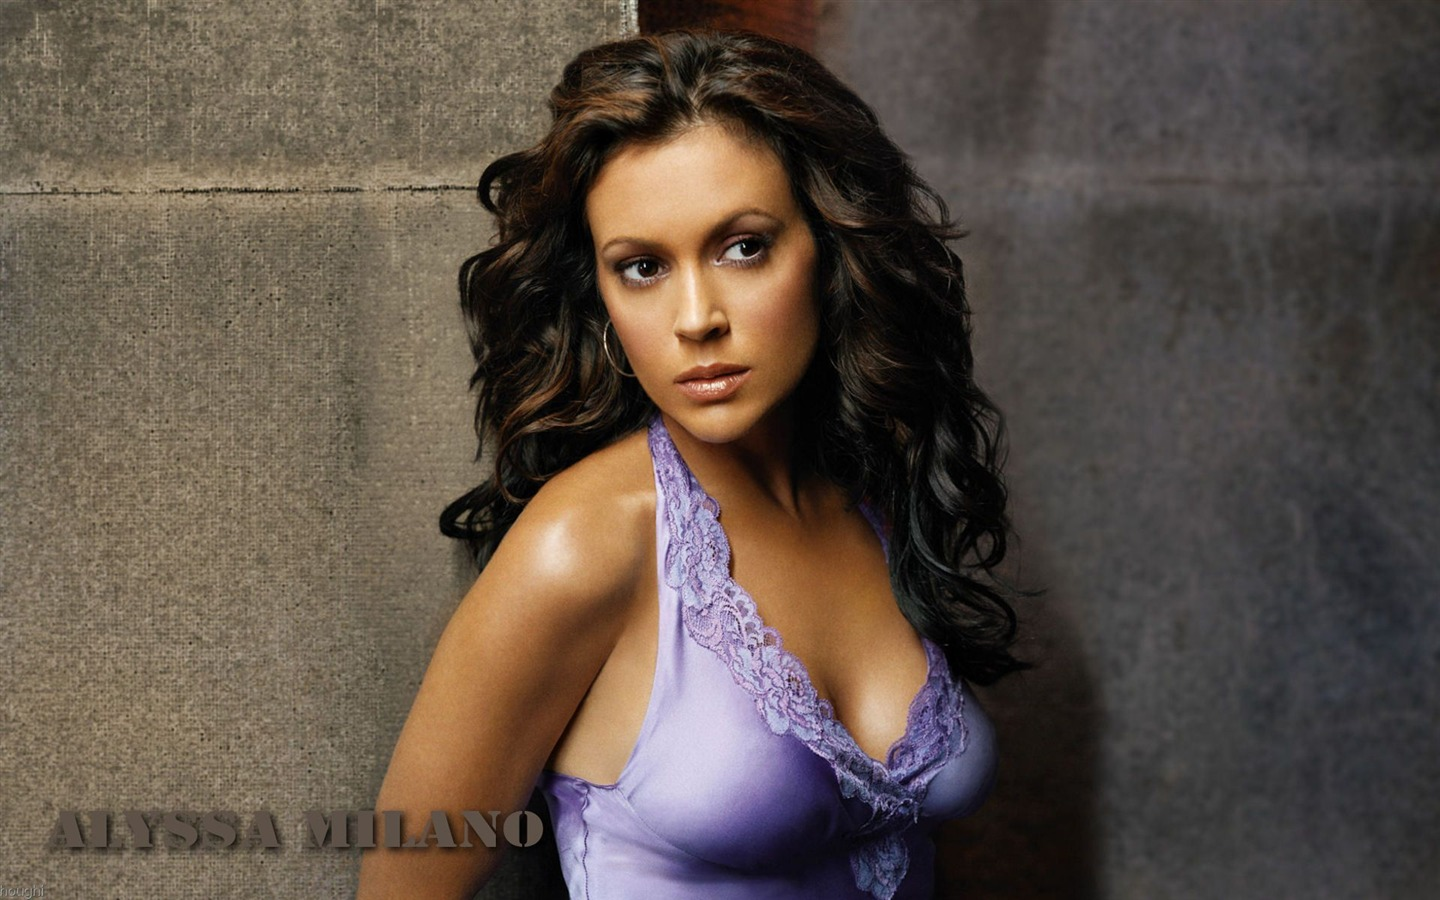 Alyssa Milano #030 - 1440x900 Wallpapers Pictures Photos Images